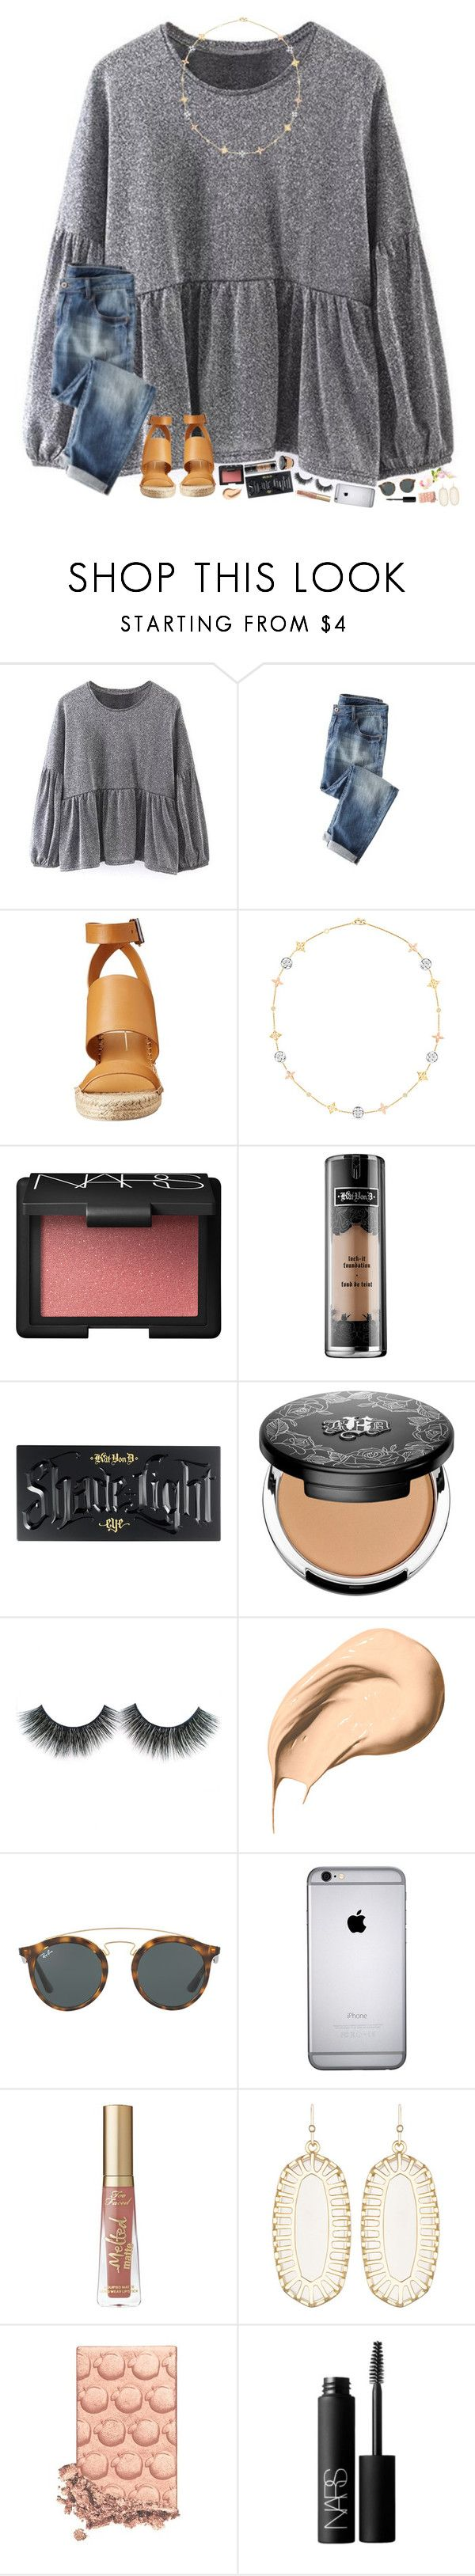 """""""the dance was so so so much fun!!"""" by hopemarlee ❤ liked on Polyvore featuring Dolce Vita, Idylle, NARS Cosmetics, Kat Von D, Bobbi Brown Cosmetics, Ray-Ban, Too Faced Cosmetics, Kendra Scott and hmsloves"""